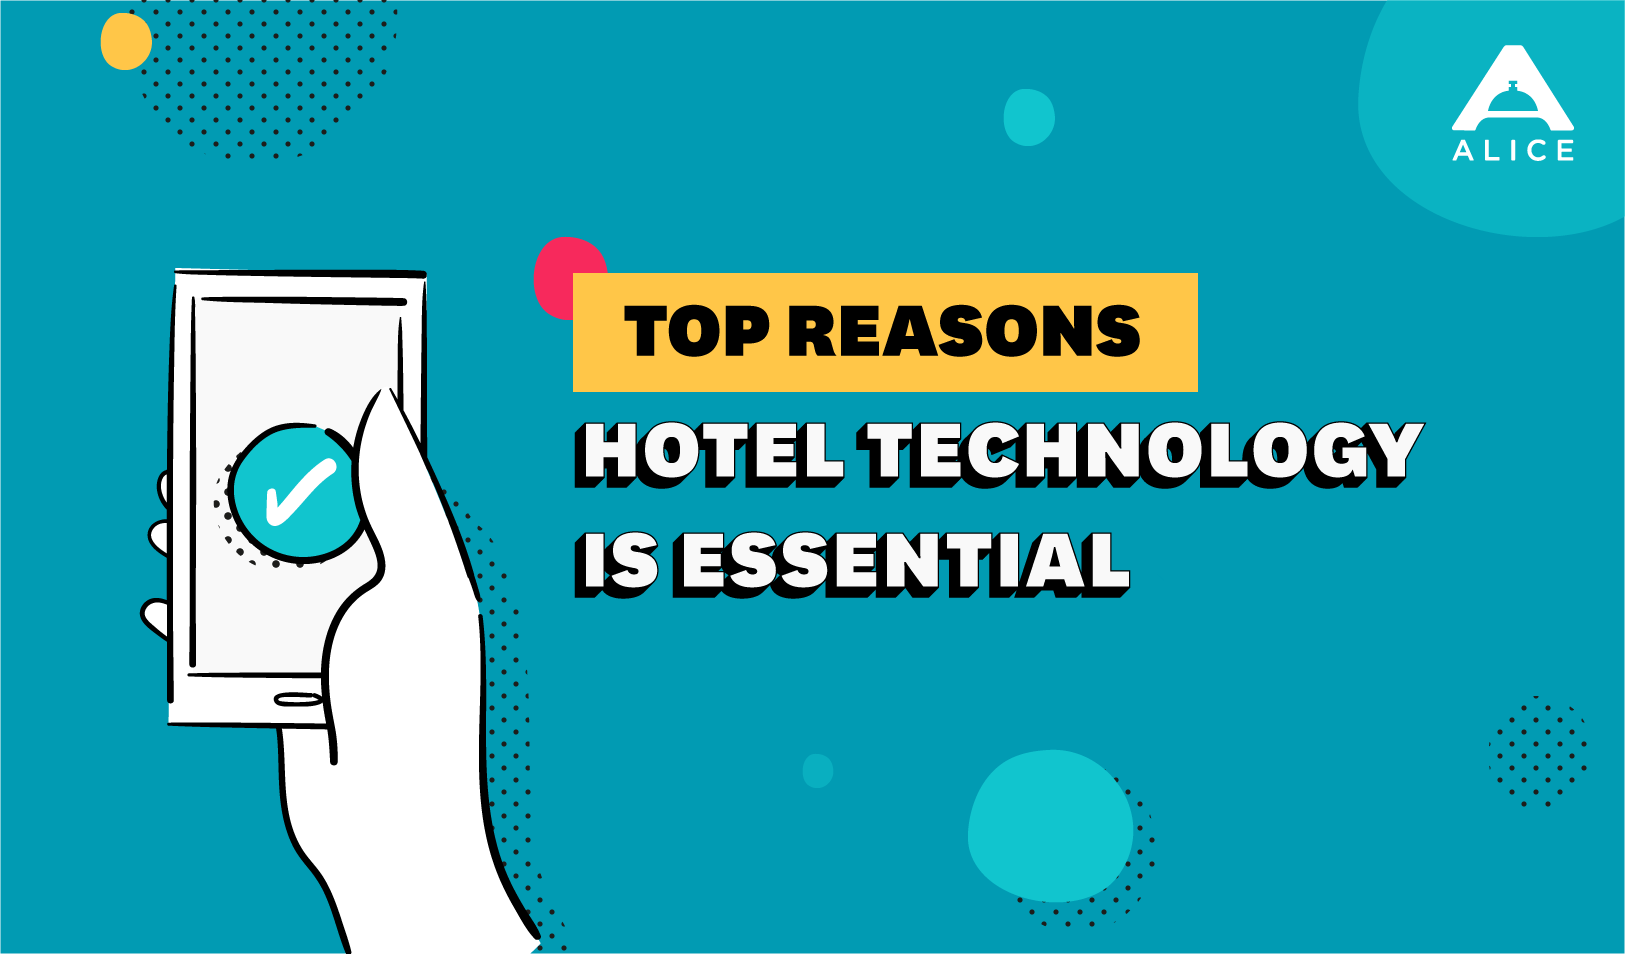 Hotel Technology is Essential